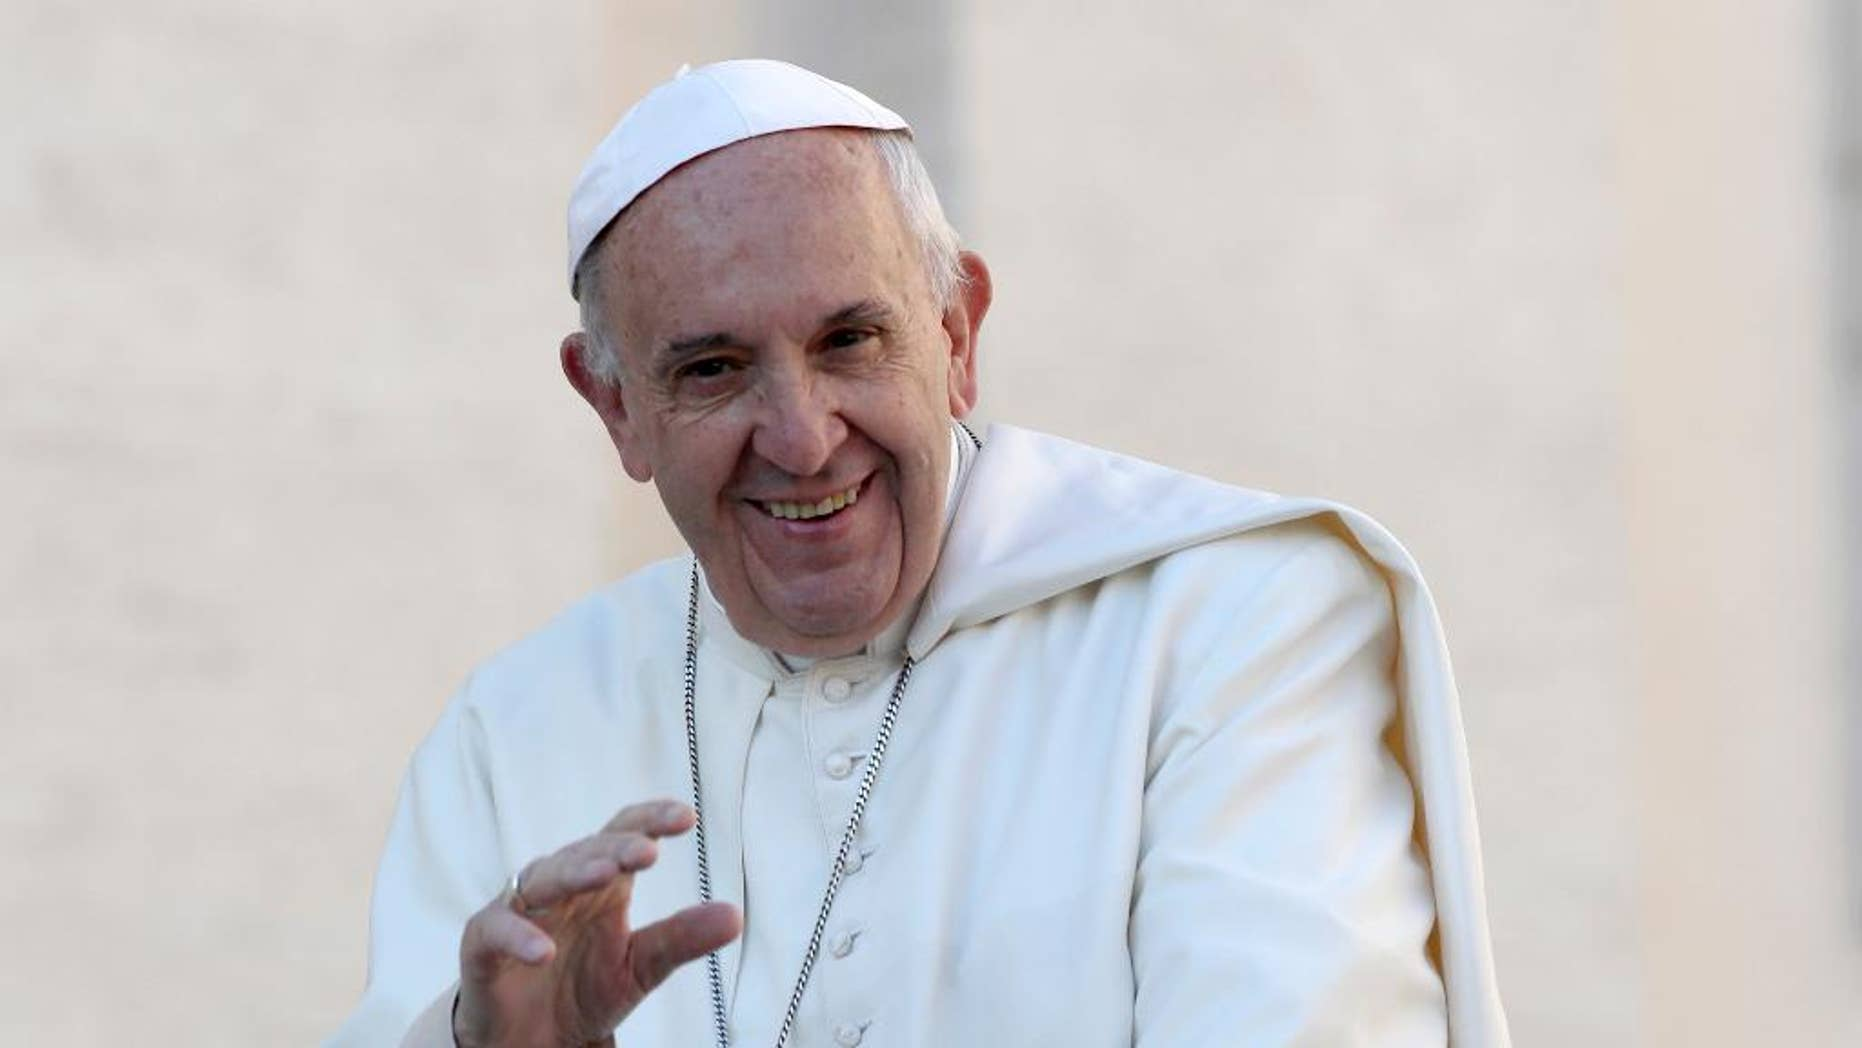 FILE - In this Oct. 19, 2016, file photo, Pope Francis waves to the crowd as he is driven around St. Peter's Square ahead of his weekly general audience, at the Vatican. Francis was presented by Chicago Archbishop Blase Cupich with a Chicago Cubs hat and what looks like a signed baseball at the Vatican Tuesday, Nov. 15, 2016, nearly two weeks after the Cubs won their first World Series since 1908. (AP Photo/Alessandra Tarantino, File)